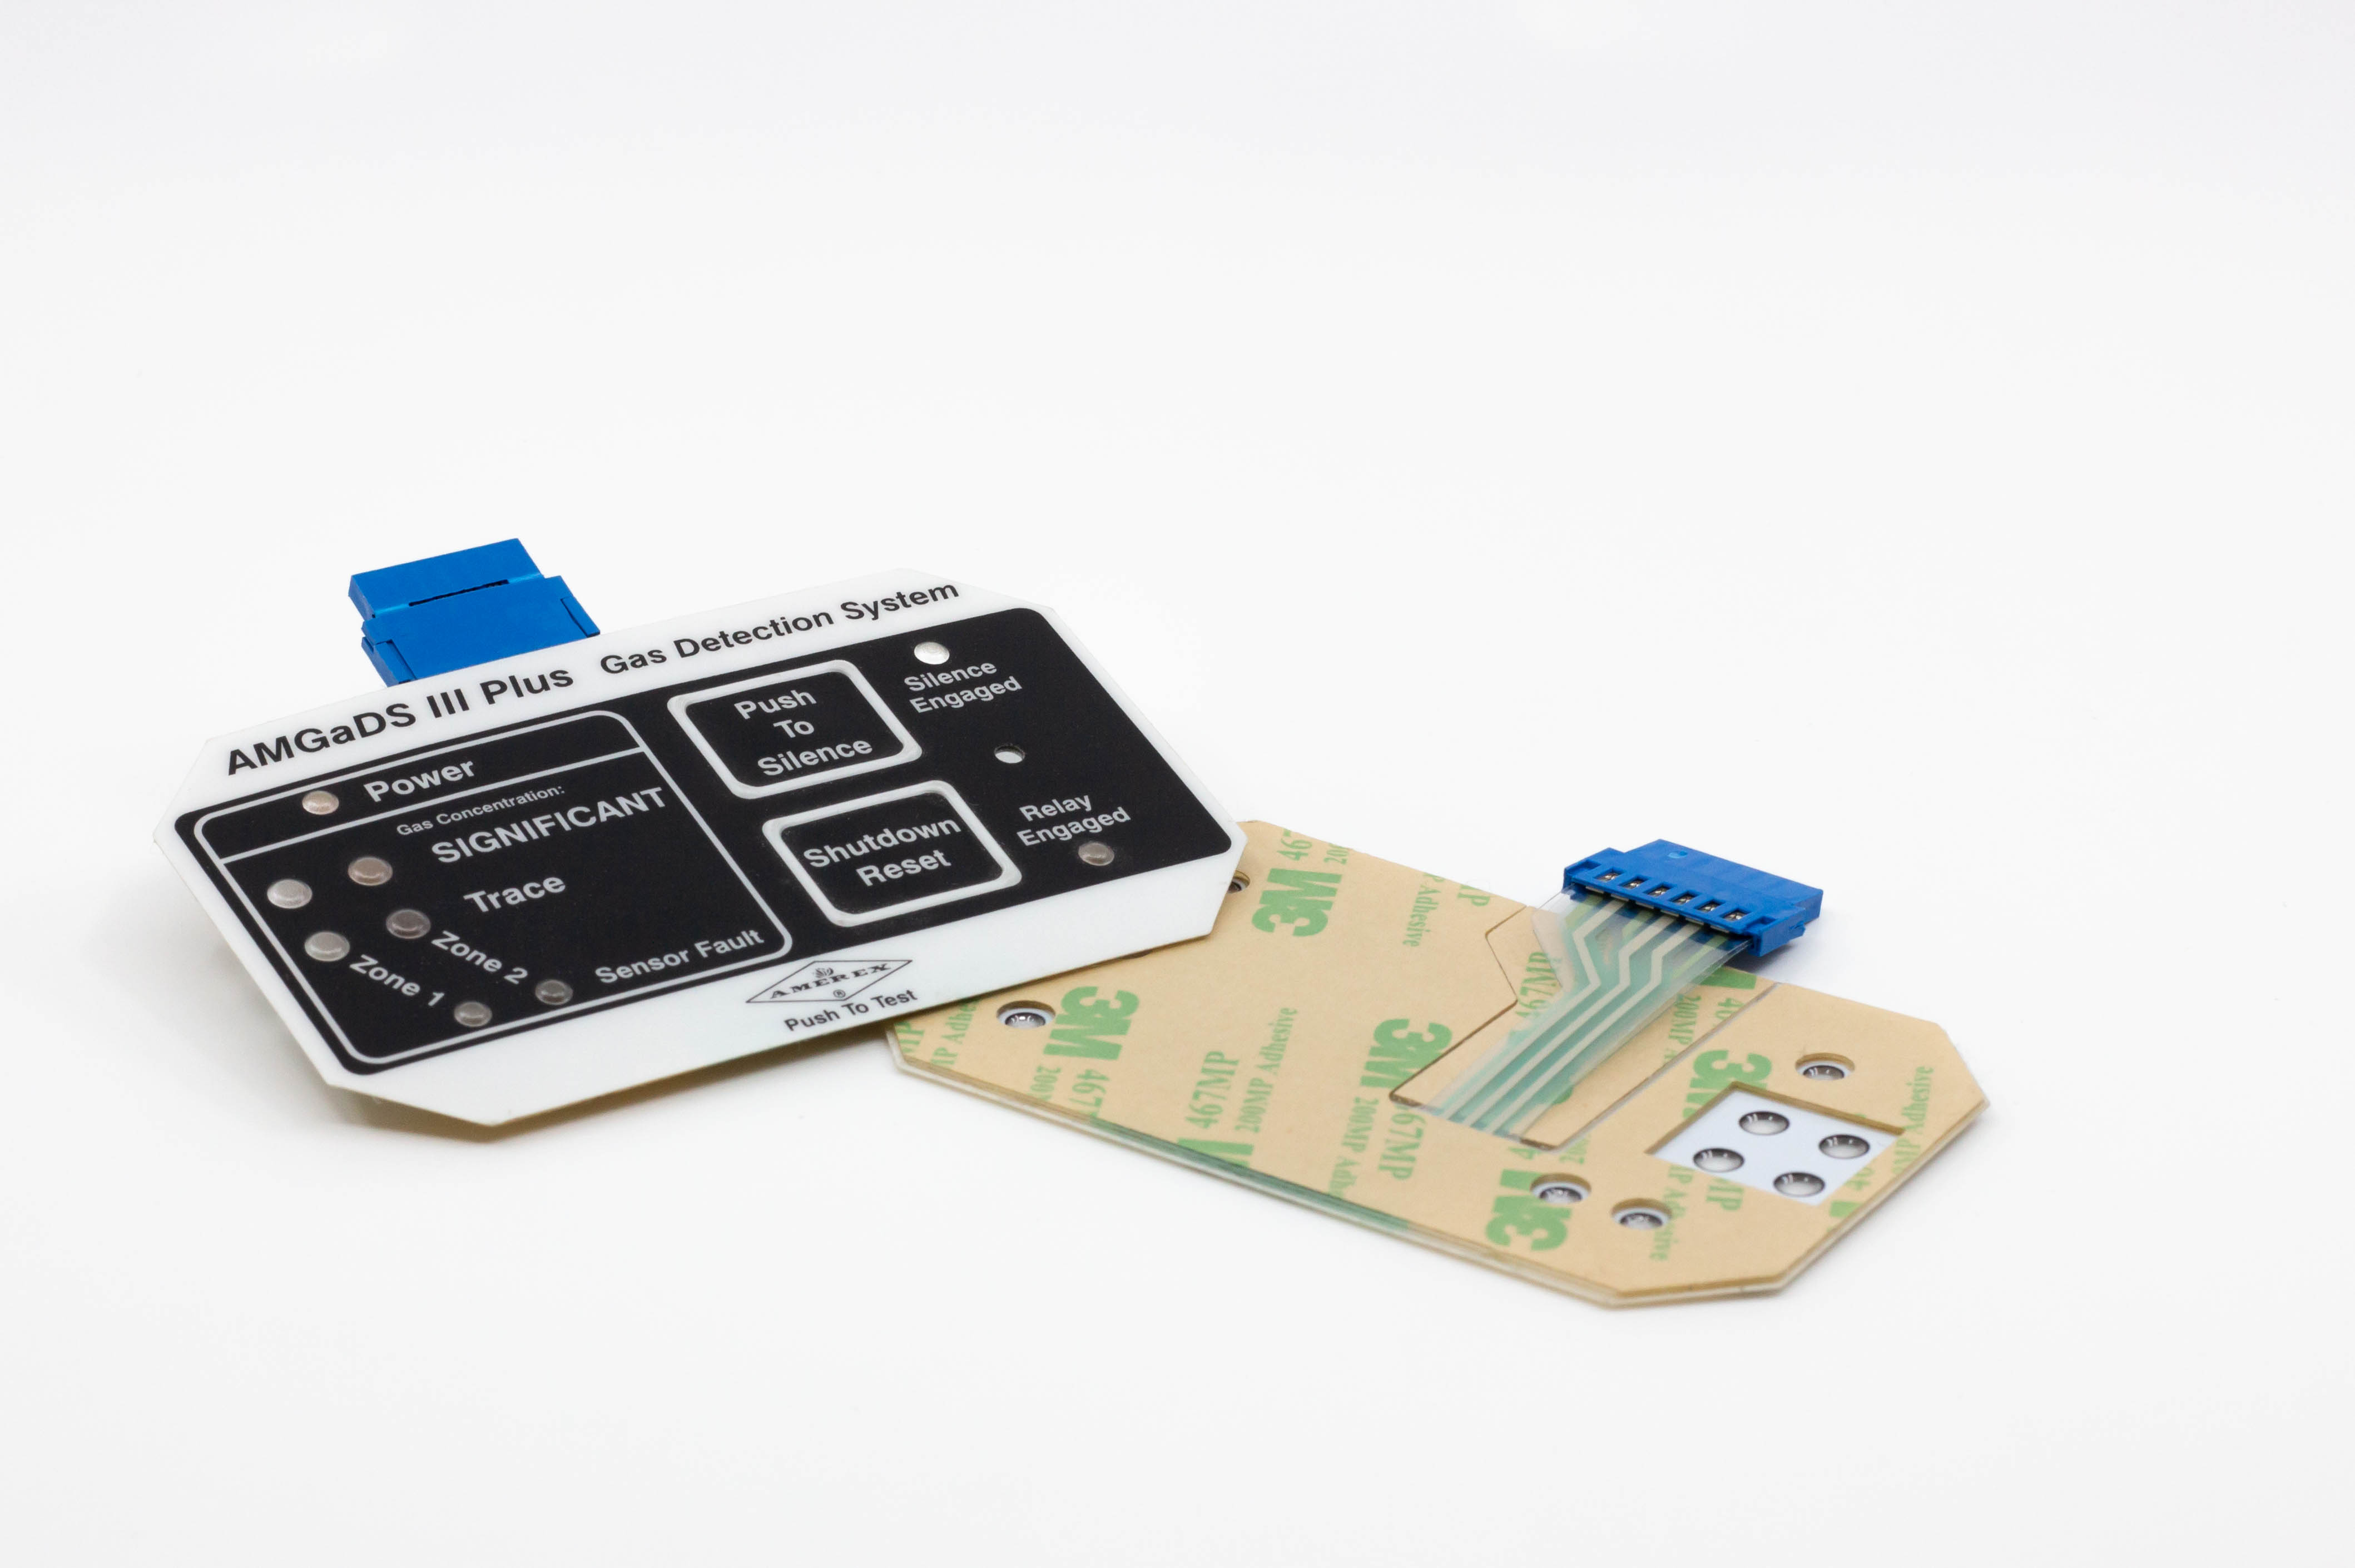 Membrane Switch Design Components and Features